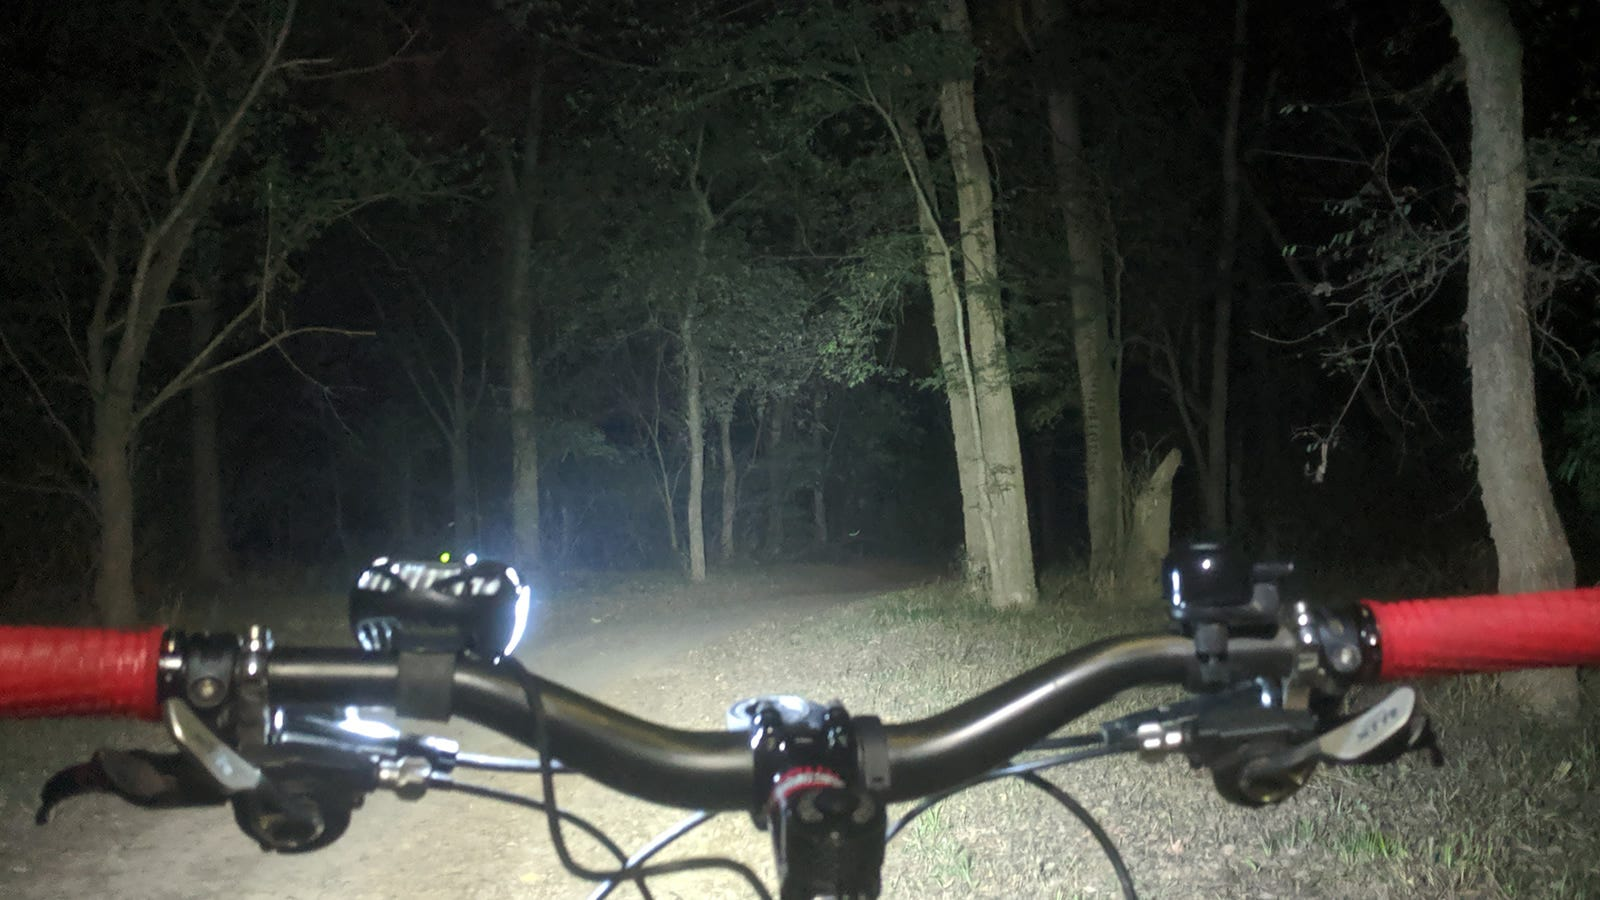 The handlebars of a bike with a light attached, illuminating dark woods at night.